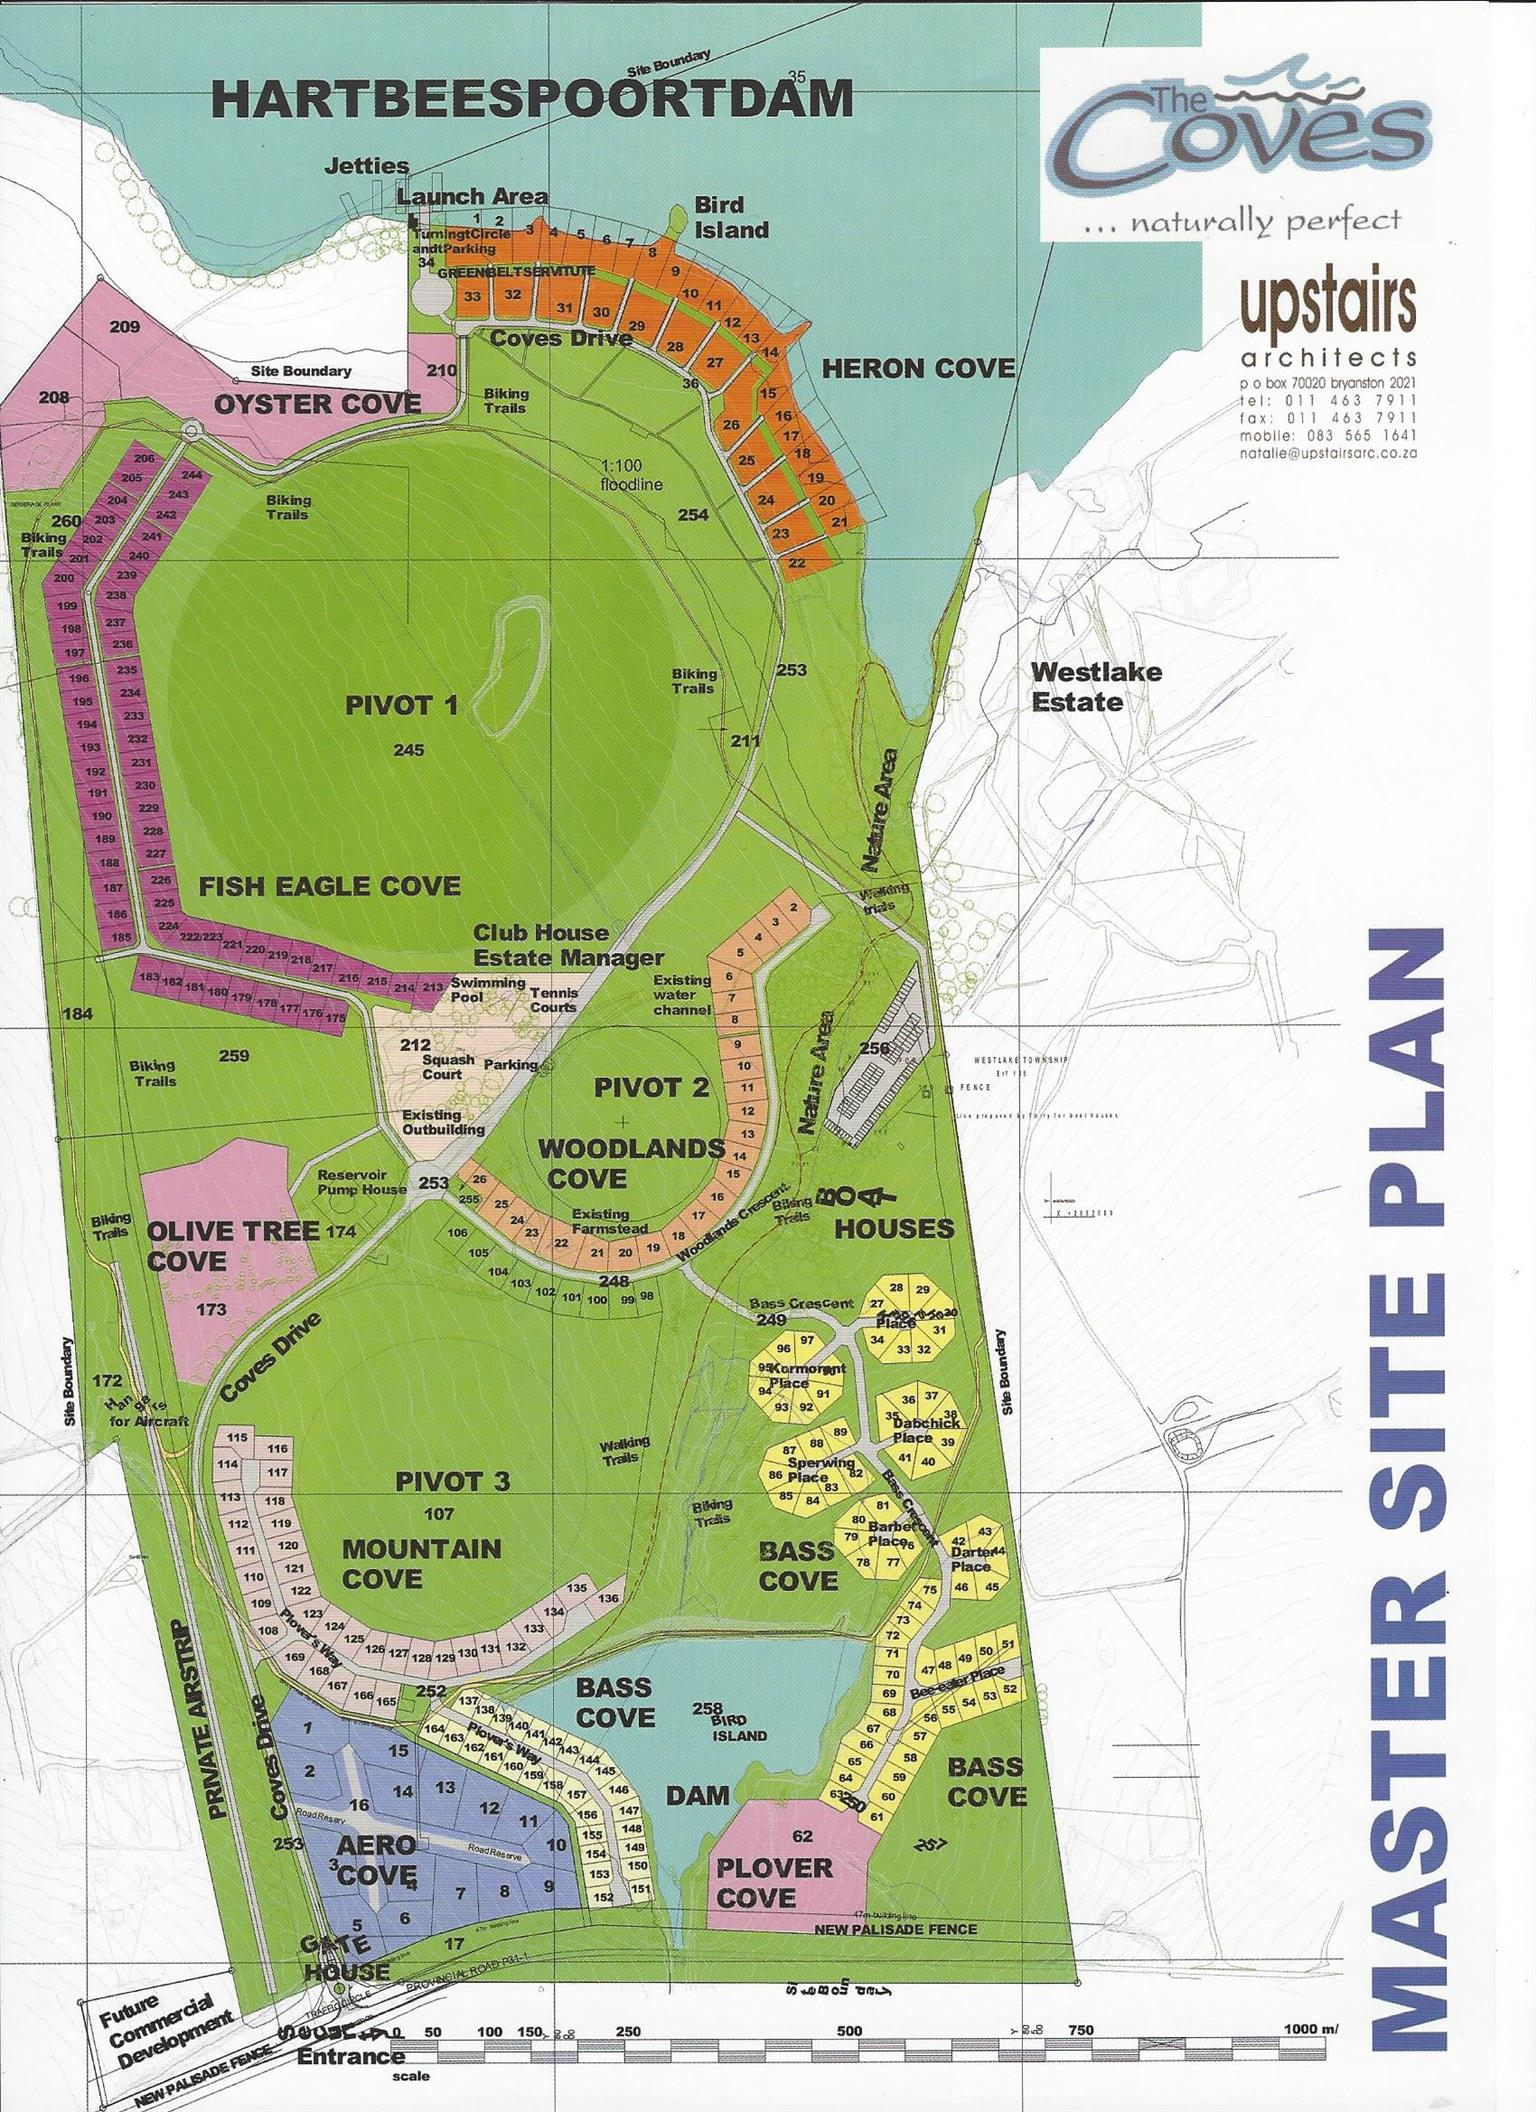 912 sq m Vacant land for sale - The Cove, Hartbeespoort Dam